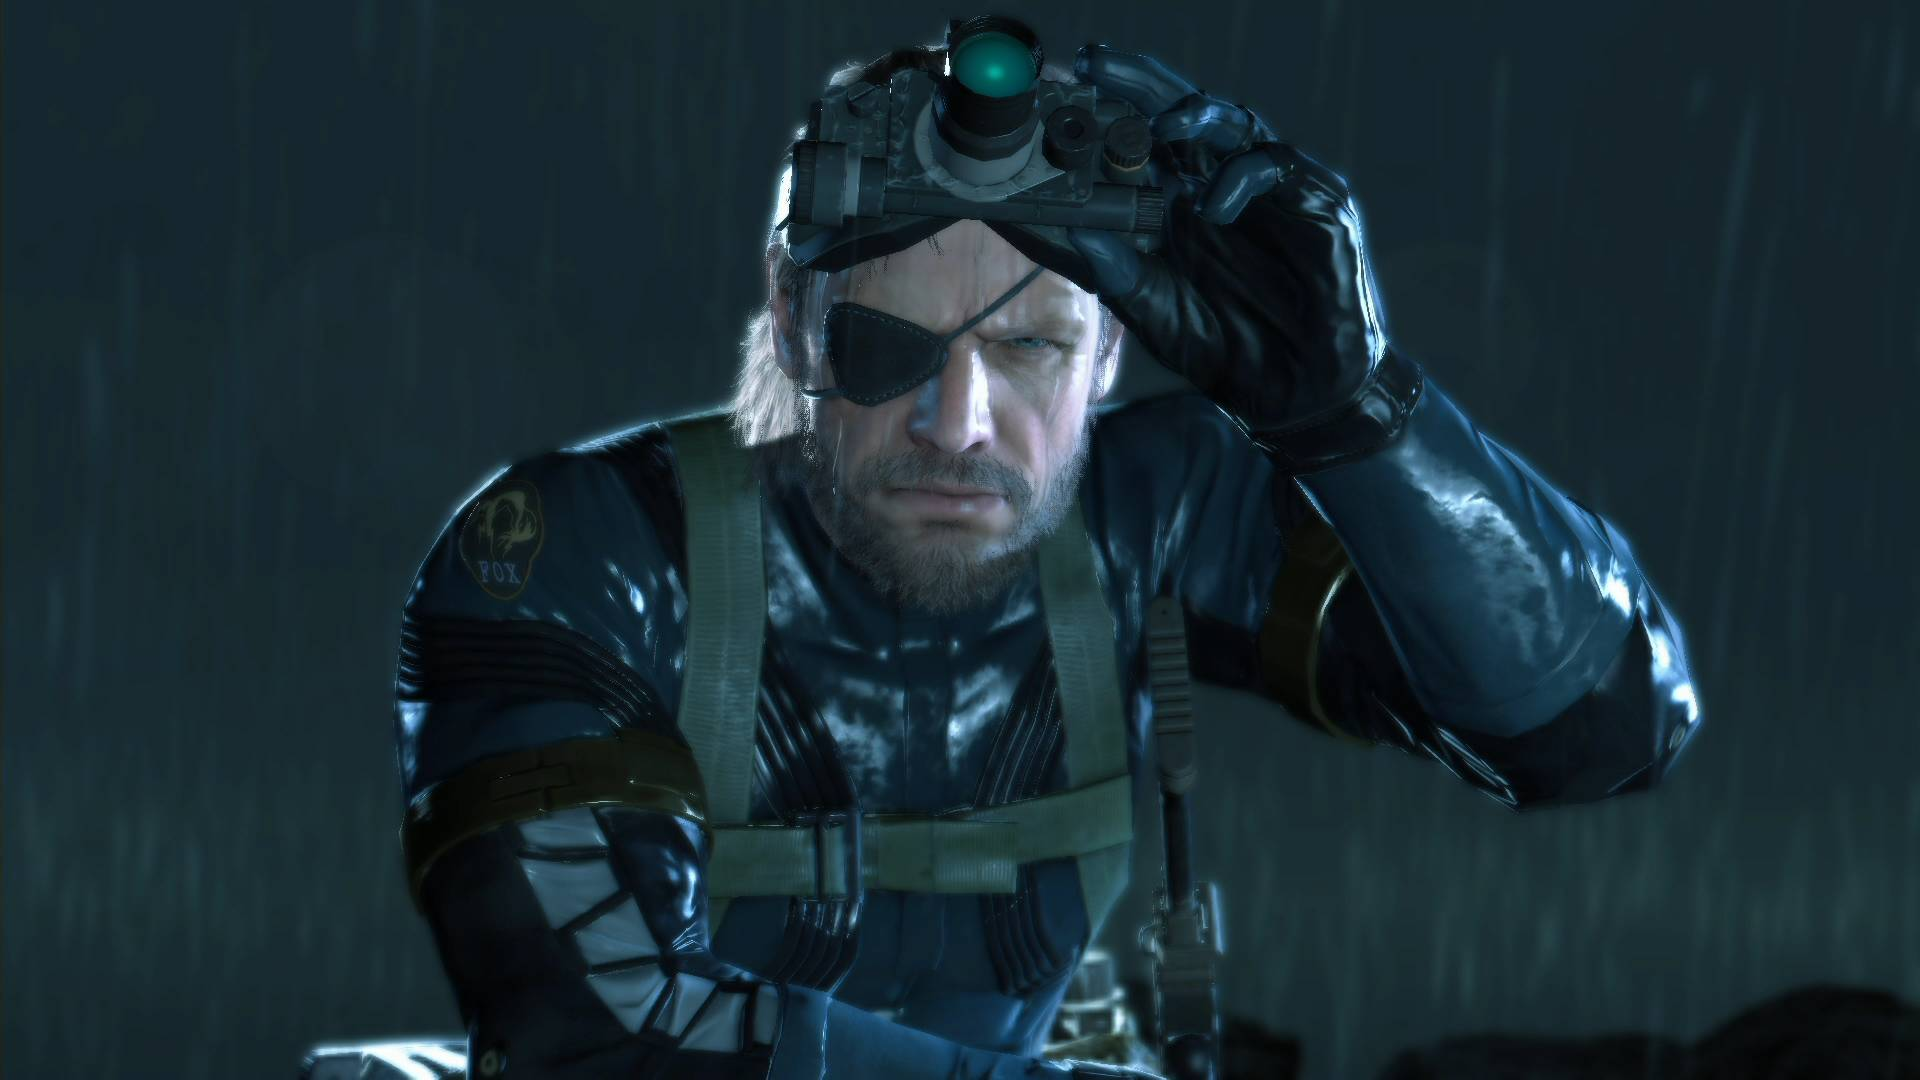 Metal-Gear-Solid-5-Ground-Zeroes-Out-in-Spring-2014-for-PS4-Xbox-One-PS3-Xbox-360-396941-2